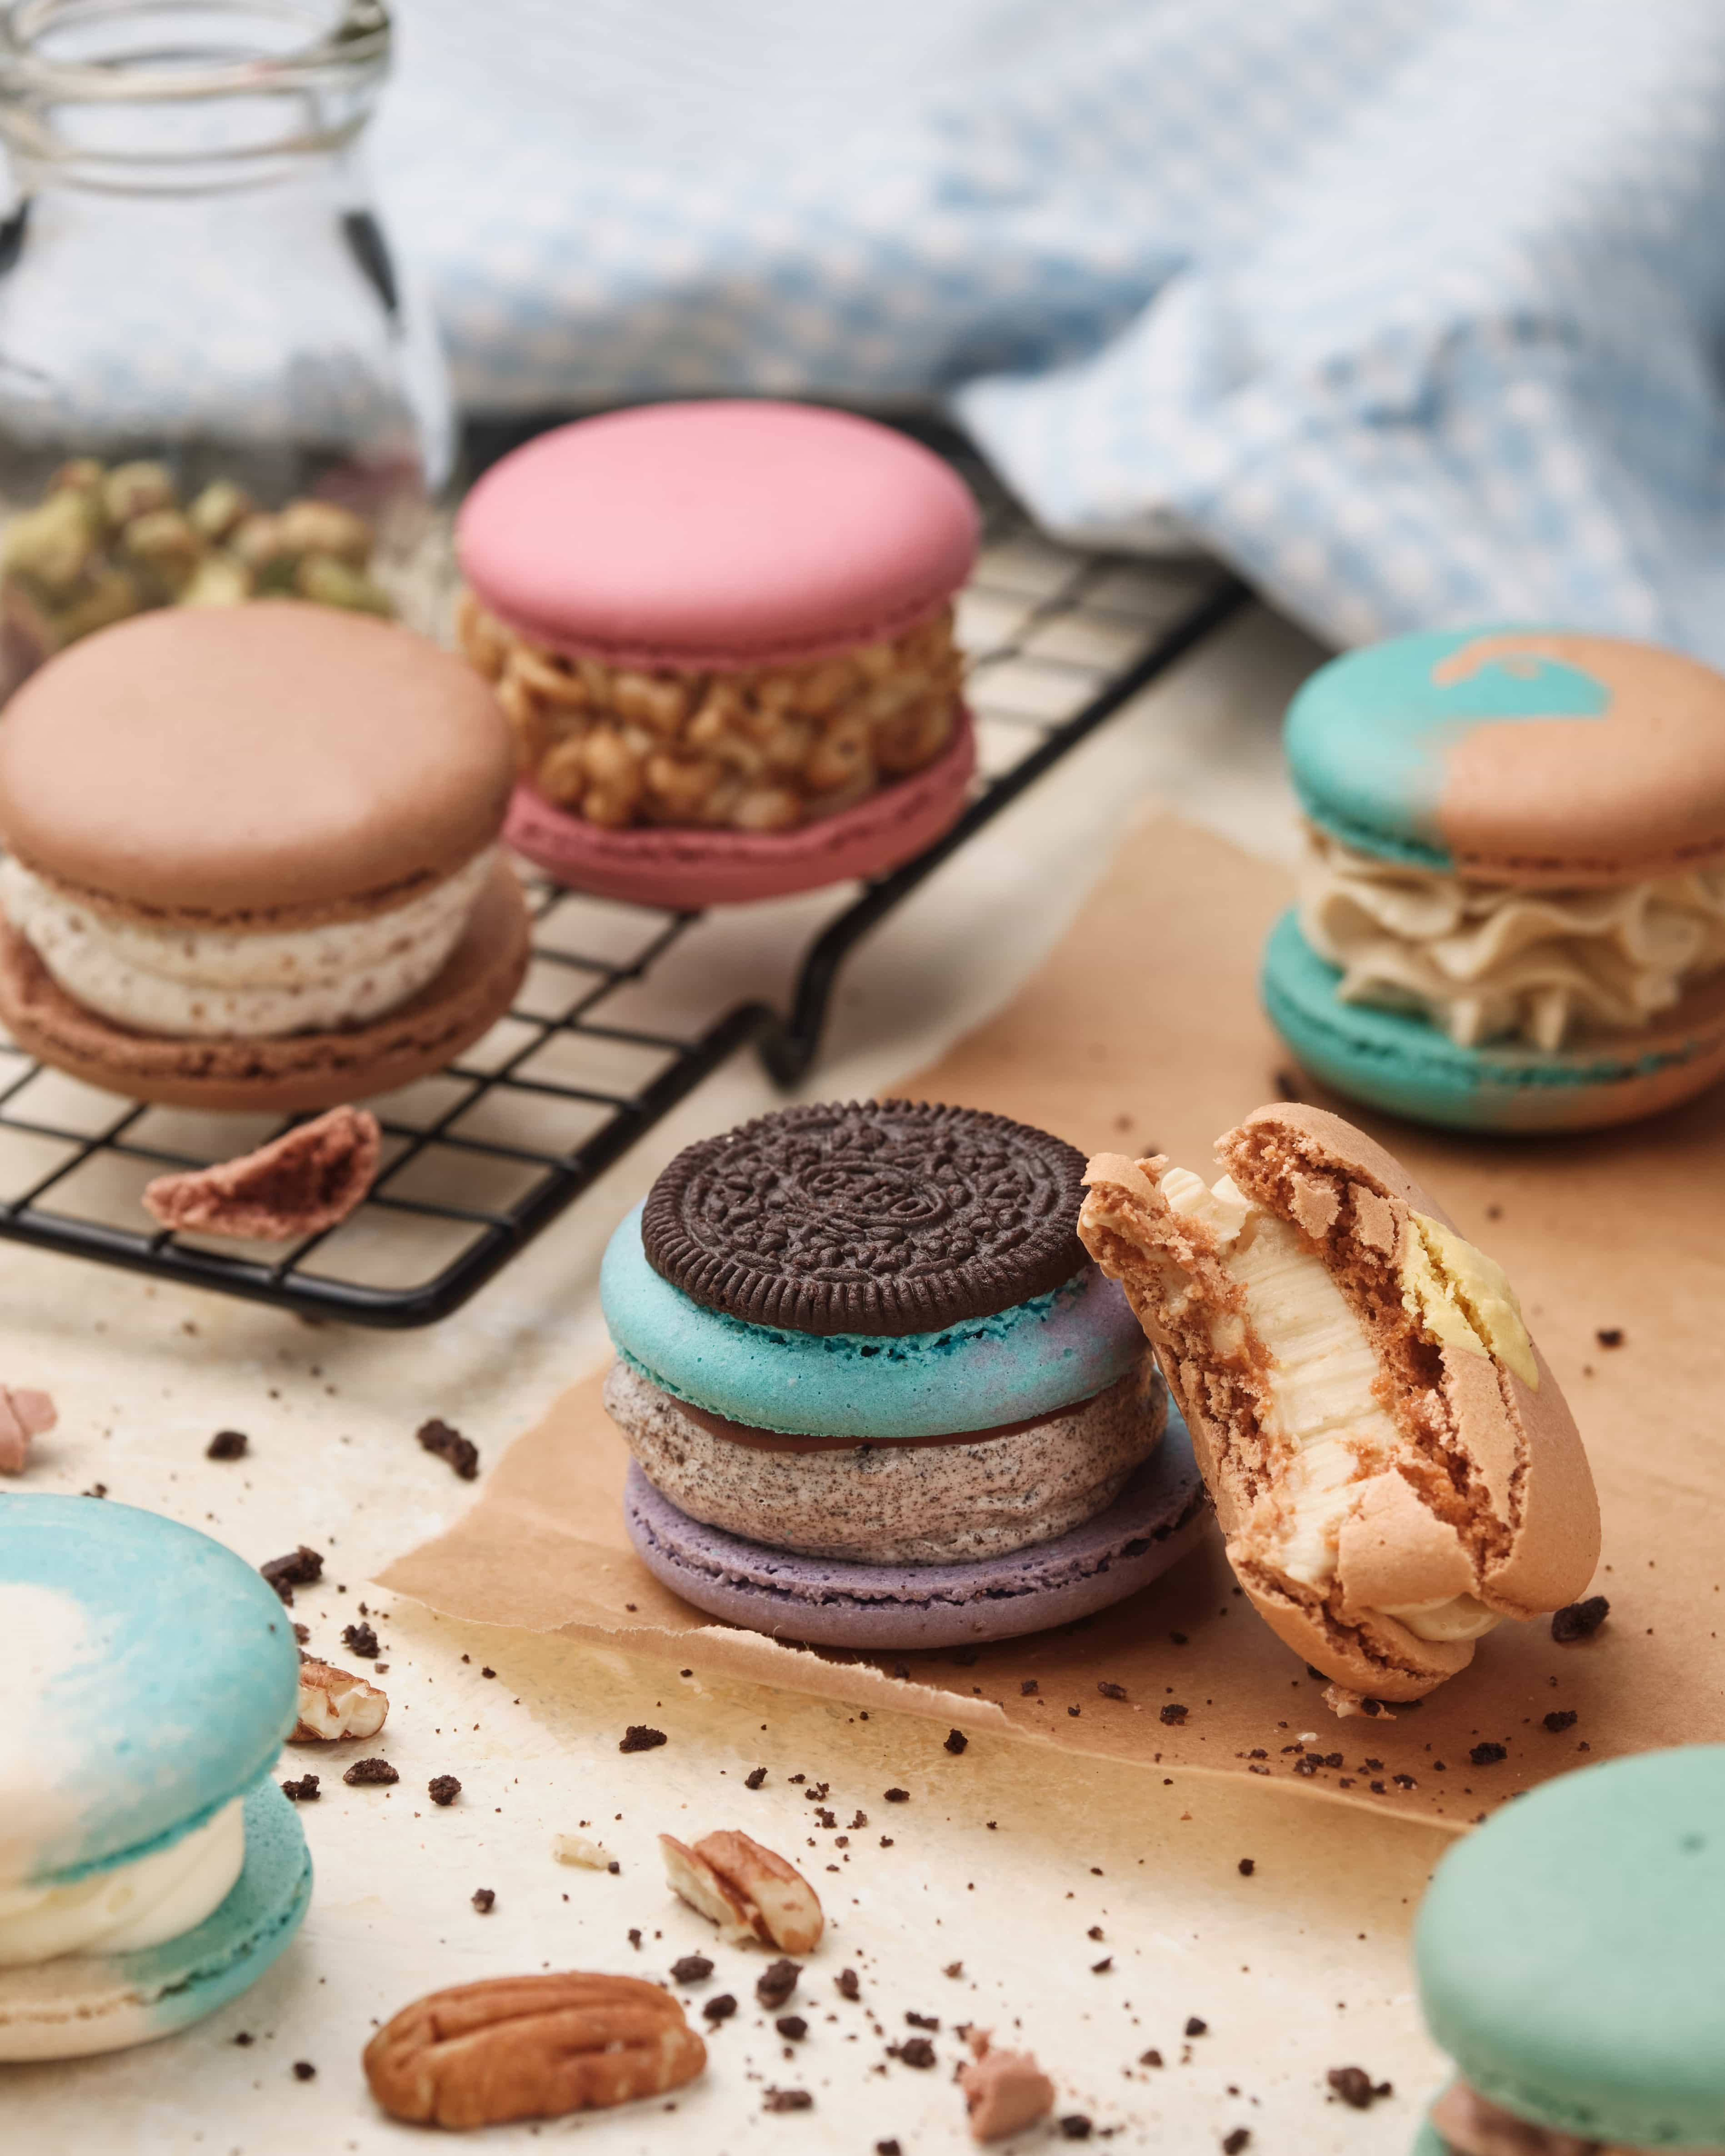 Where to buy BTS-inspired macarons